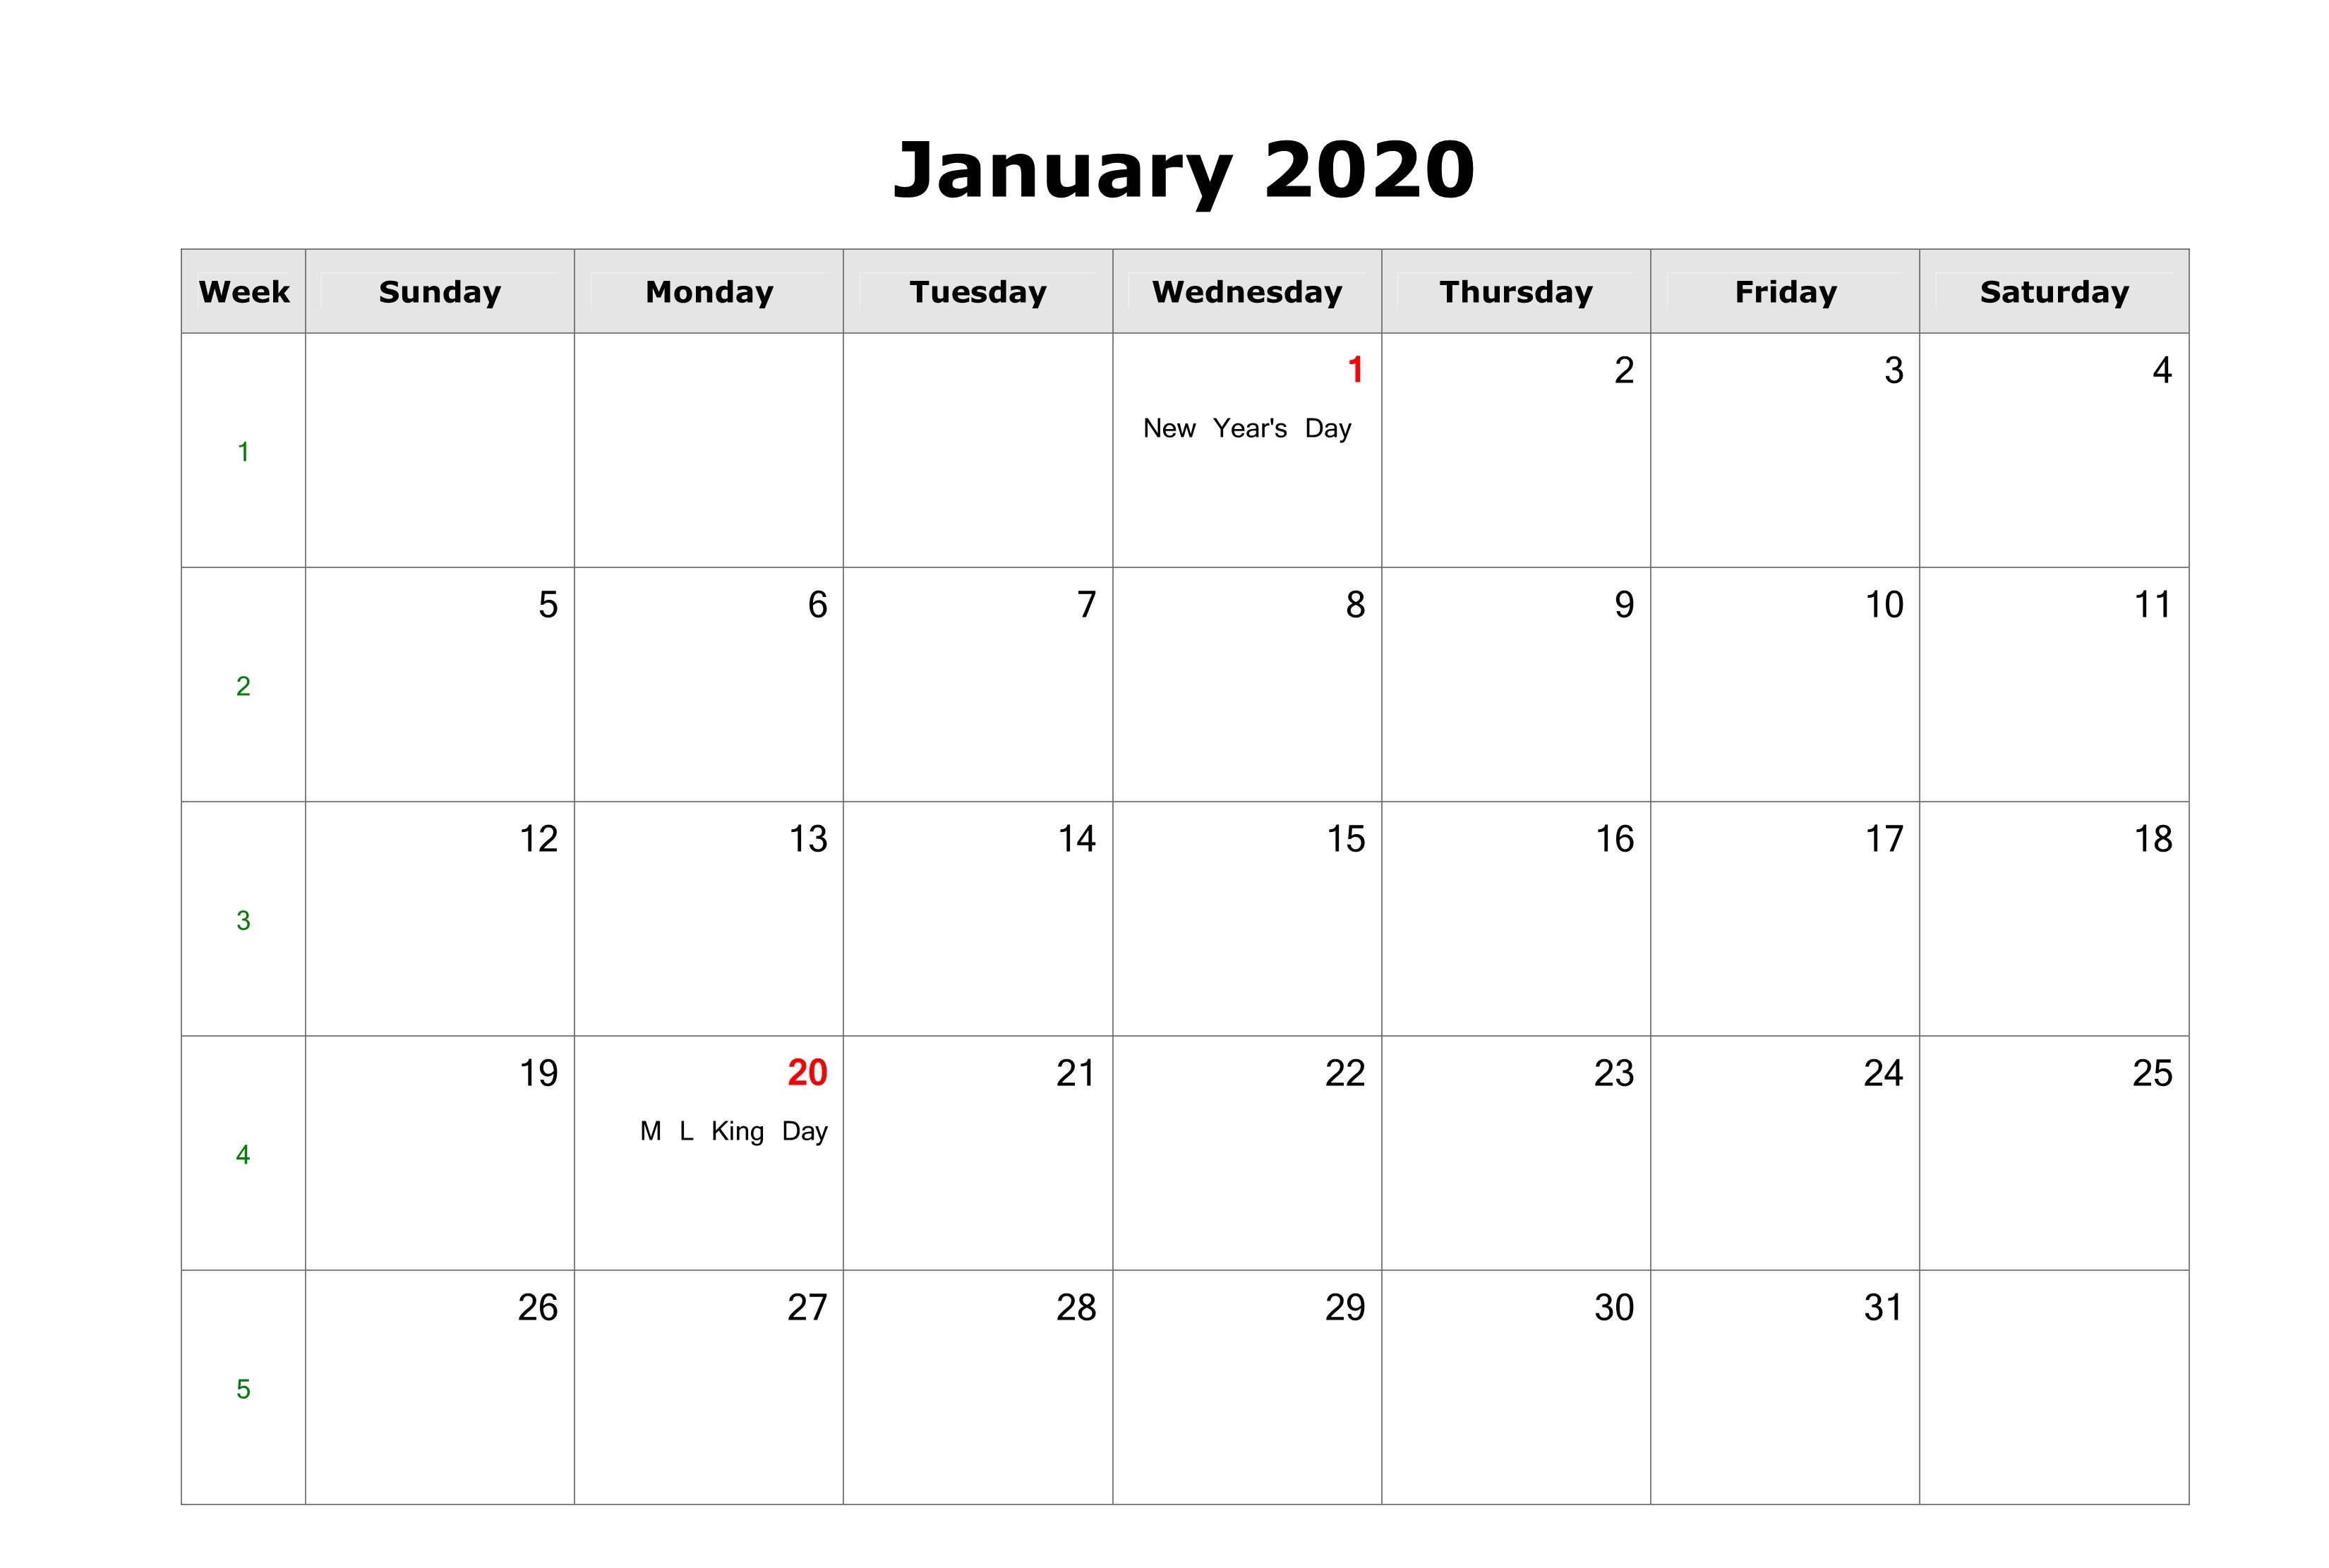 Fillable January Calendar 2020 Printable Editable With Notes for Free Fillable Calendars 2020